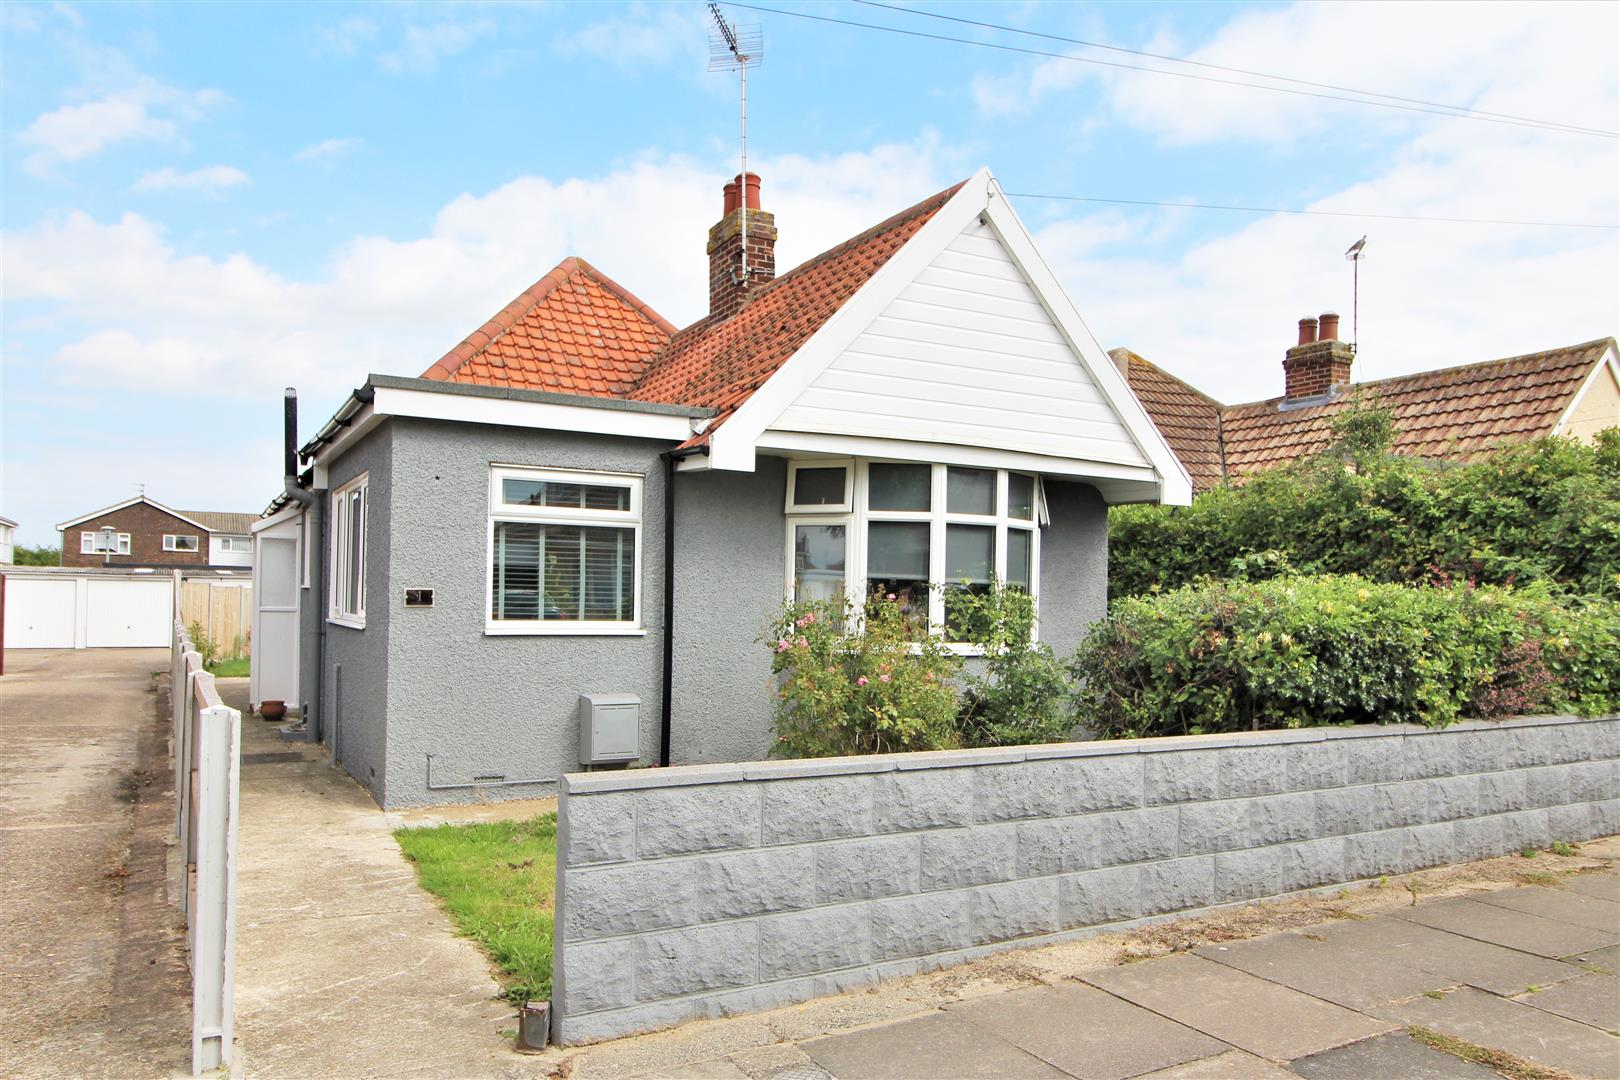 Ingarfield Road, Holland-On-Sea, Essex, CO15 5XA